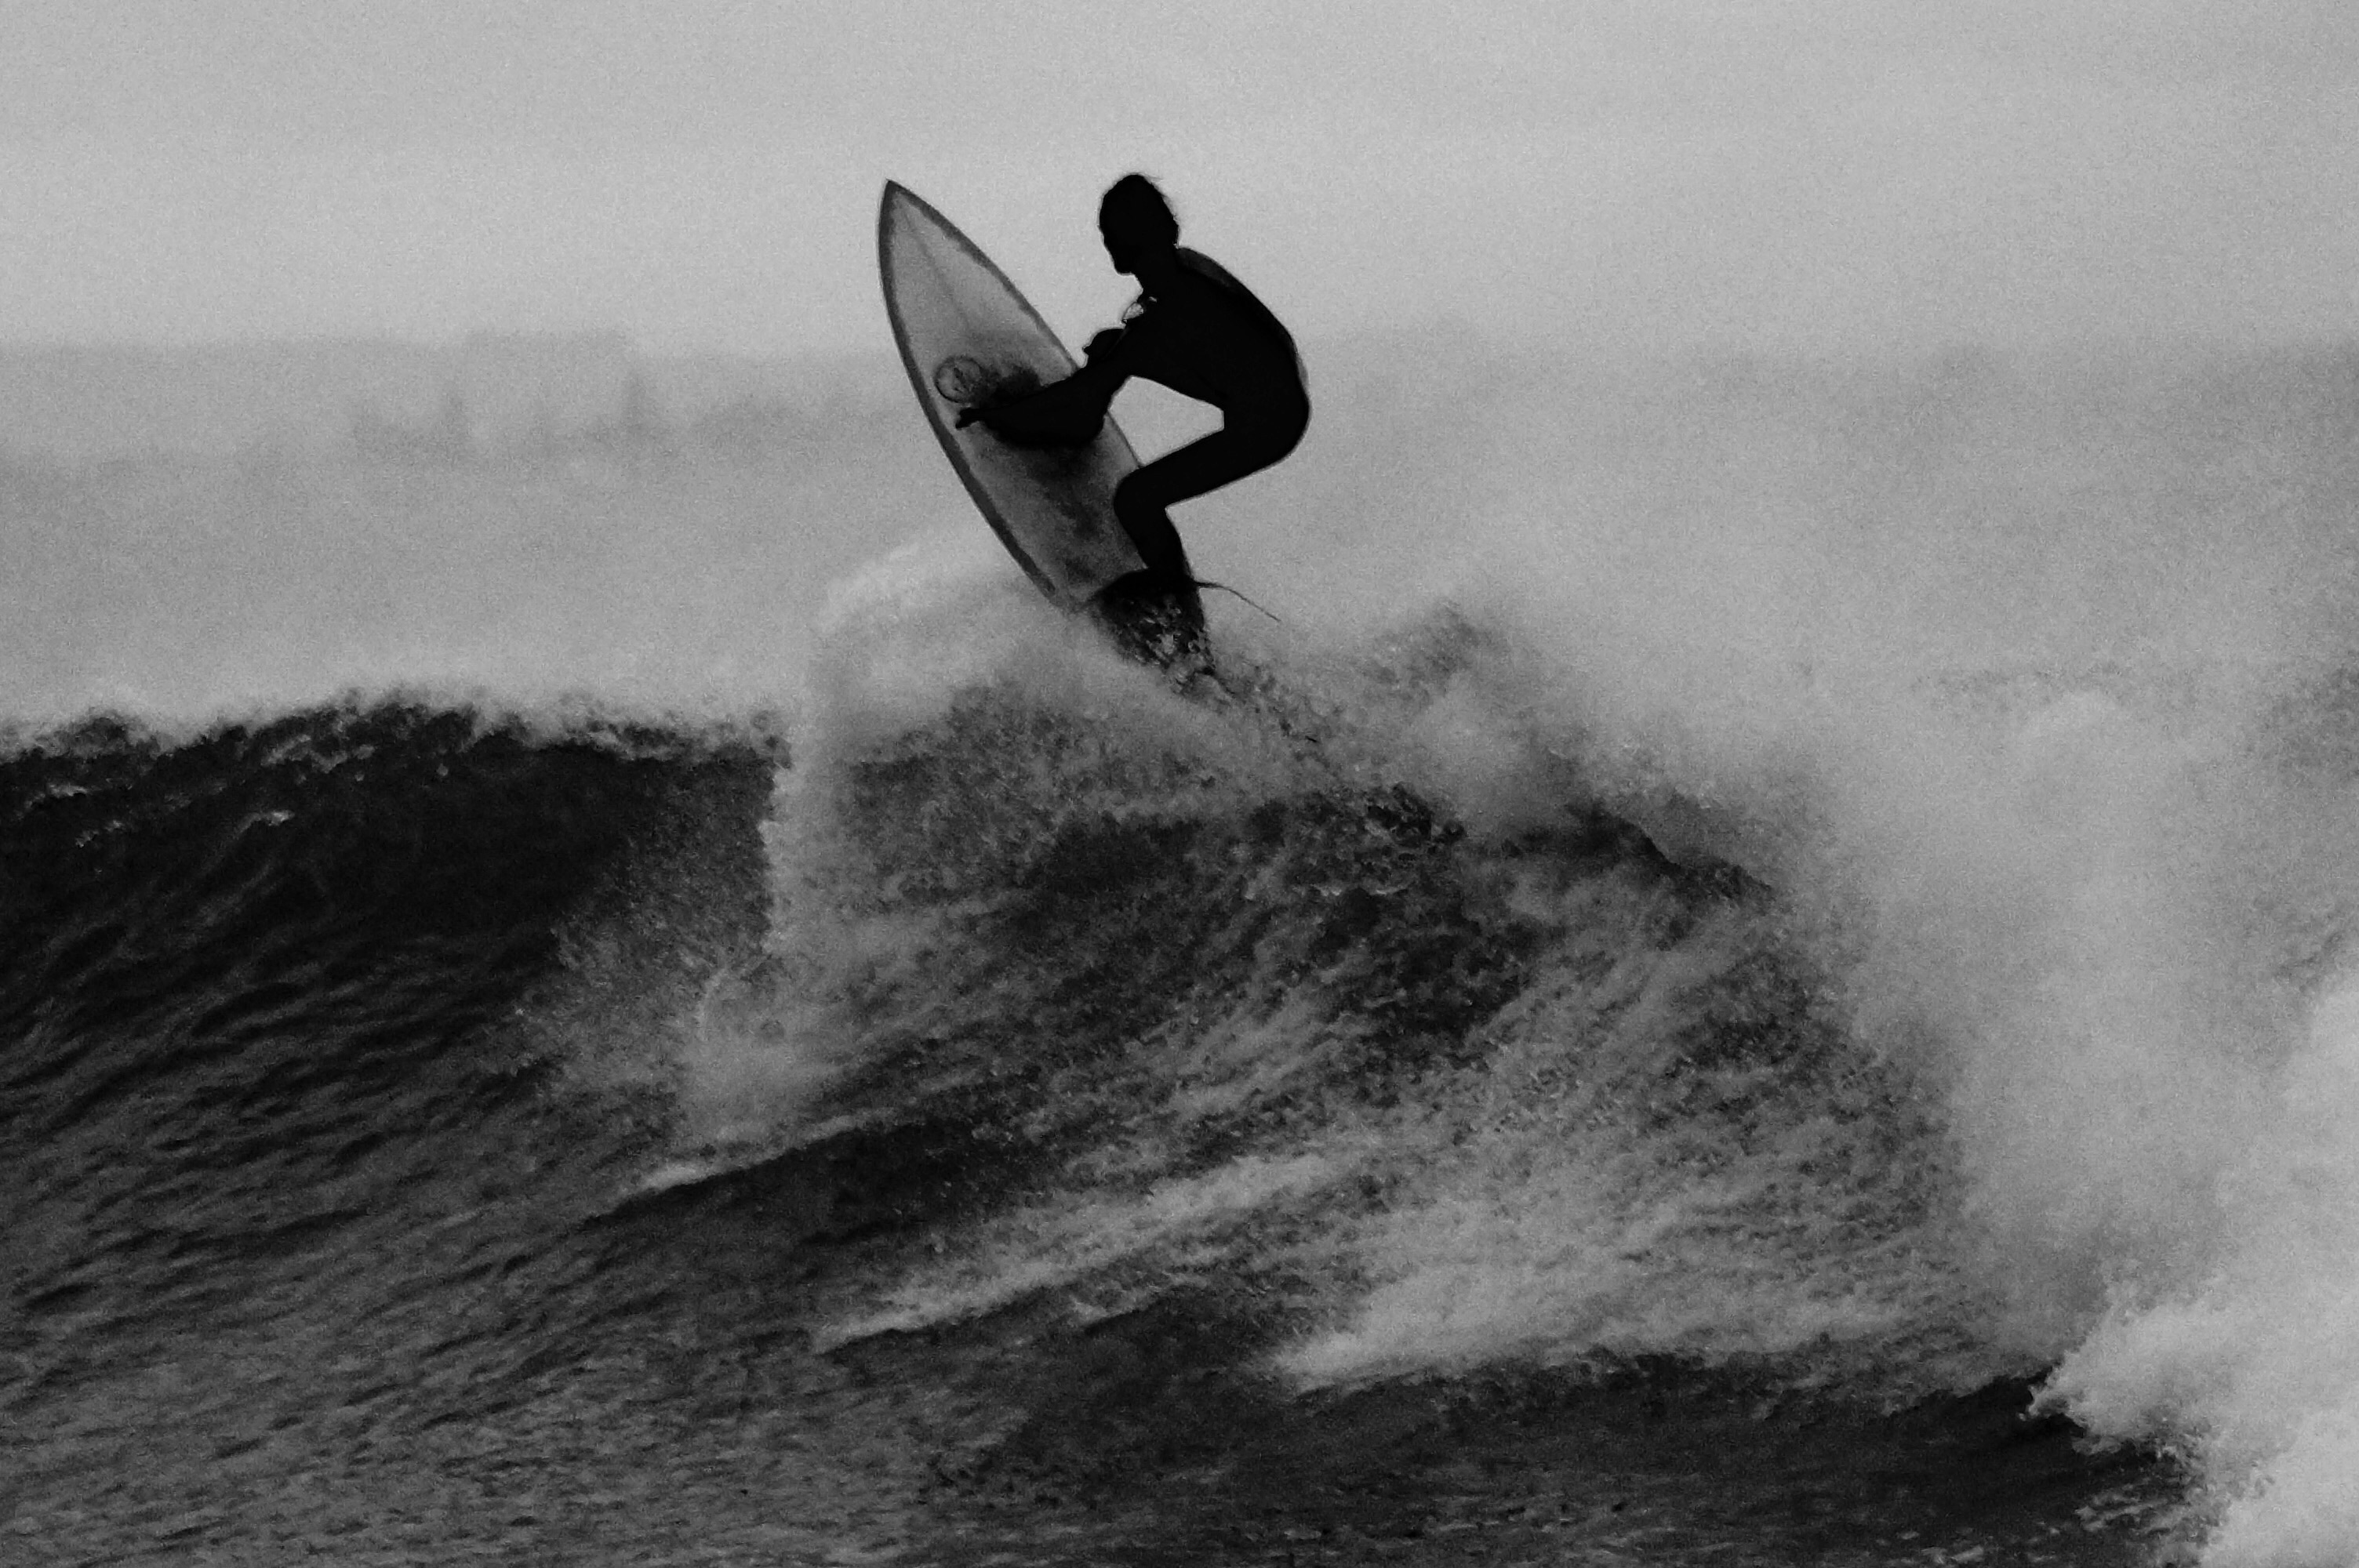 Surfer black and white, surfer, surfing, wave, surf, ocean, water, surfboard, sport, sea, beach, black and white, surf board, Free Photos, Free Images